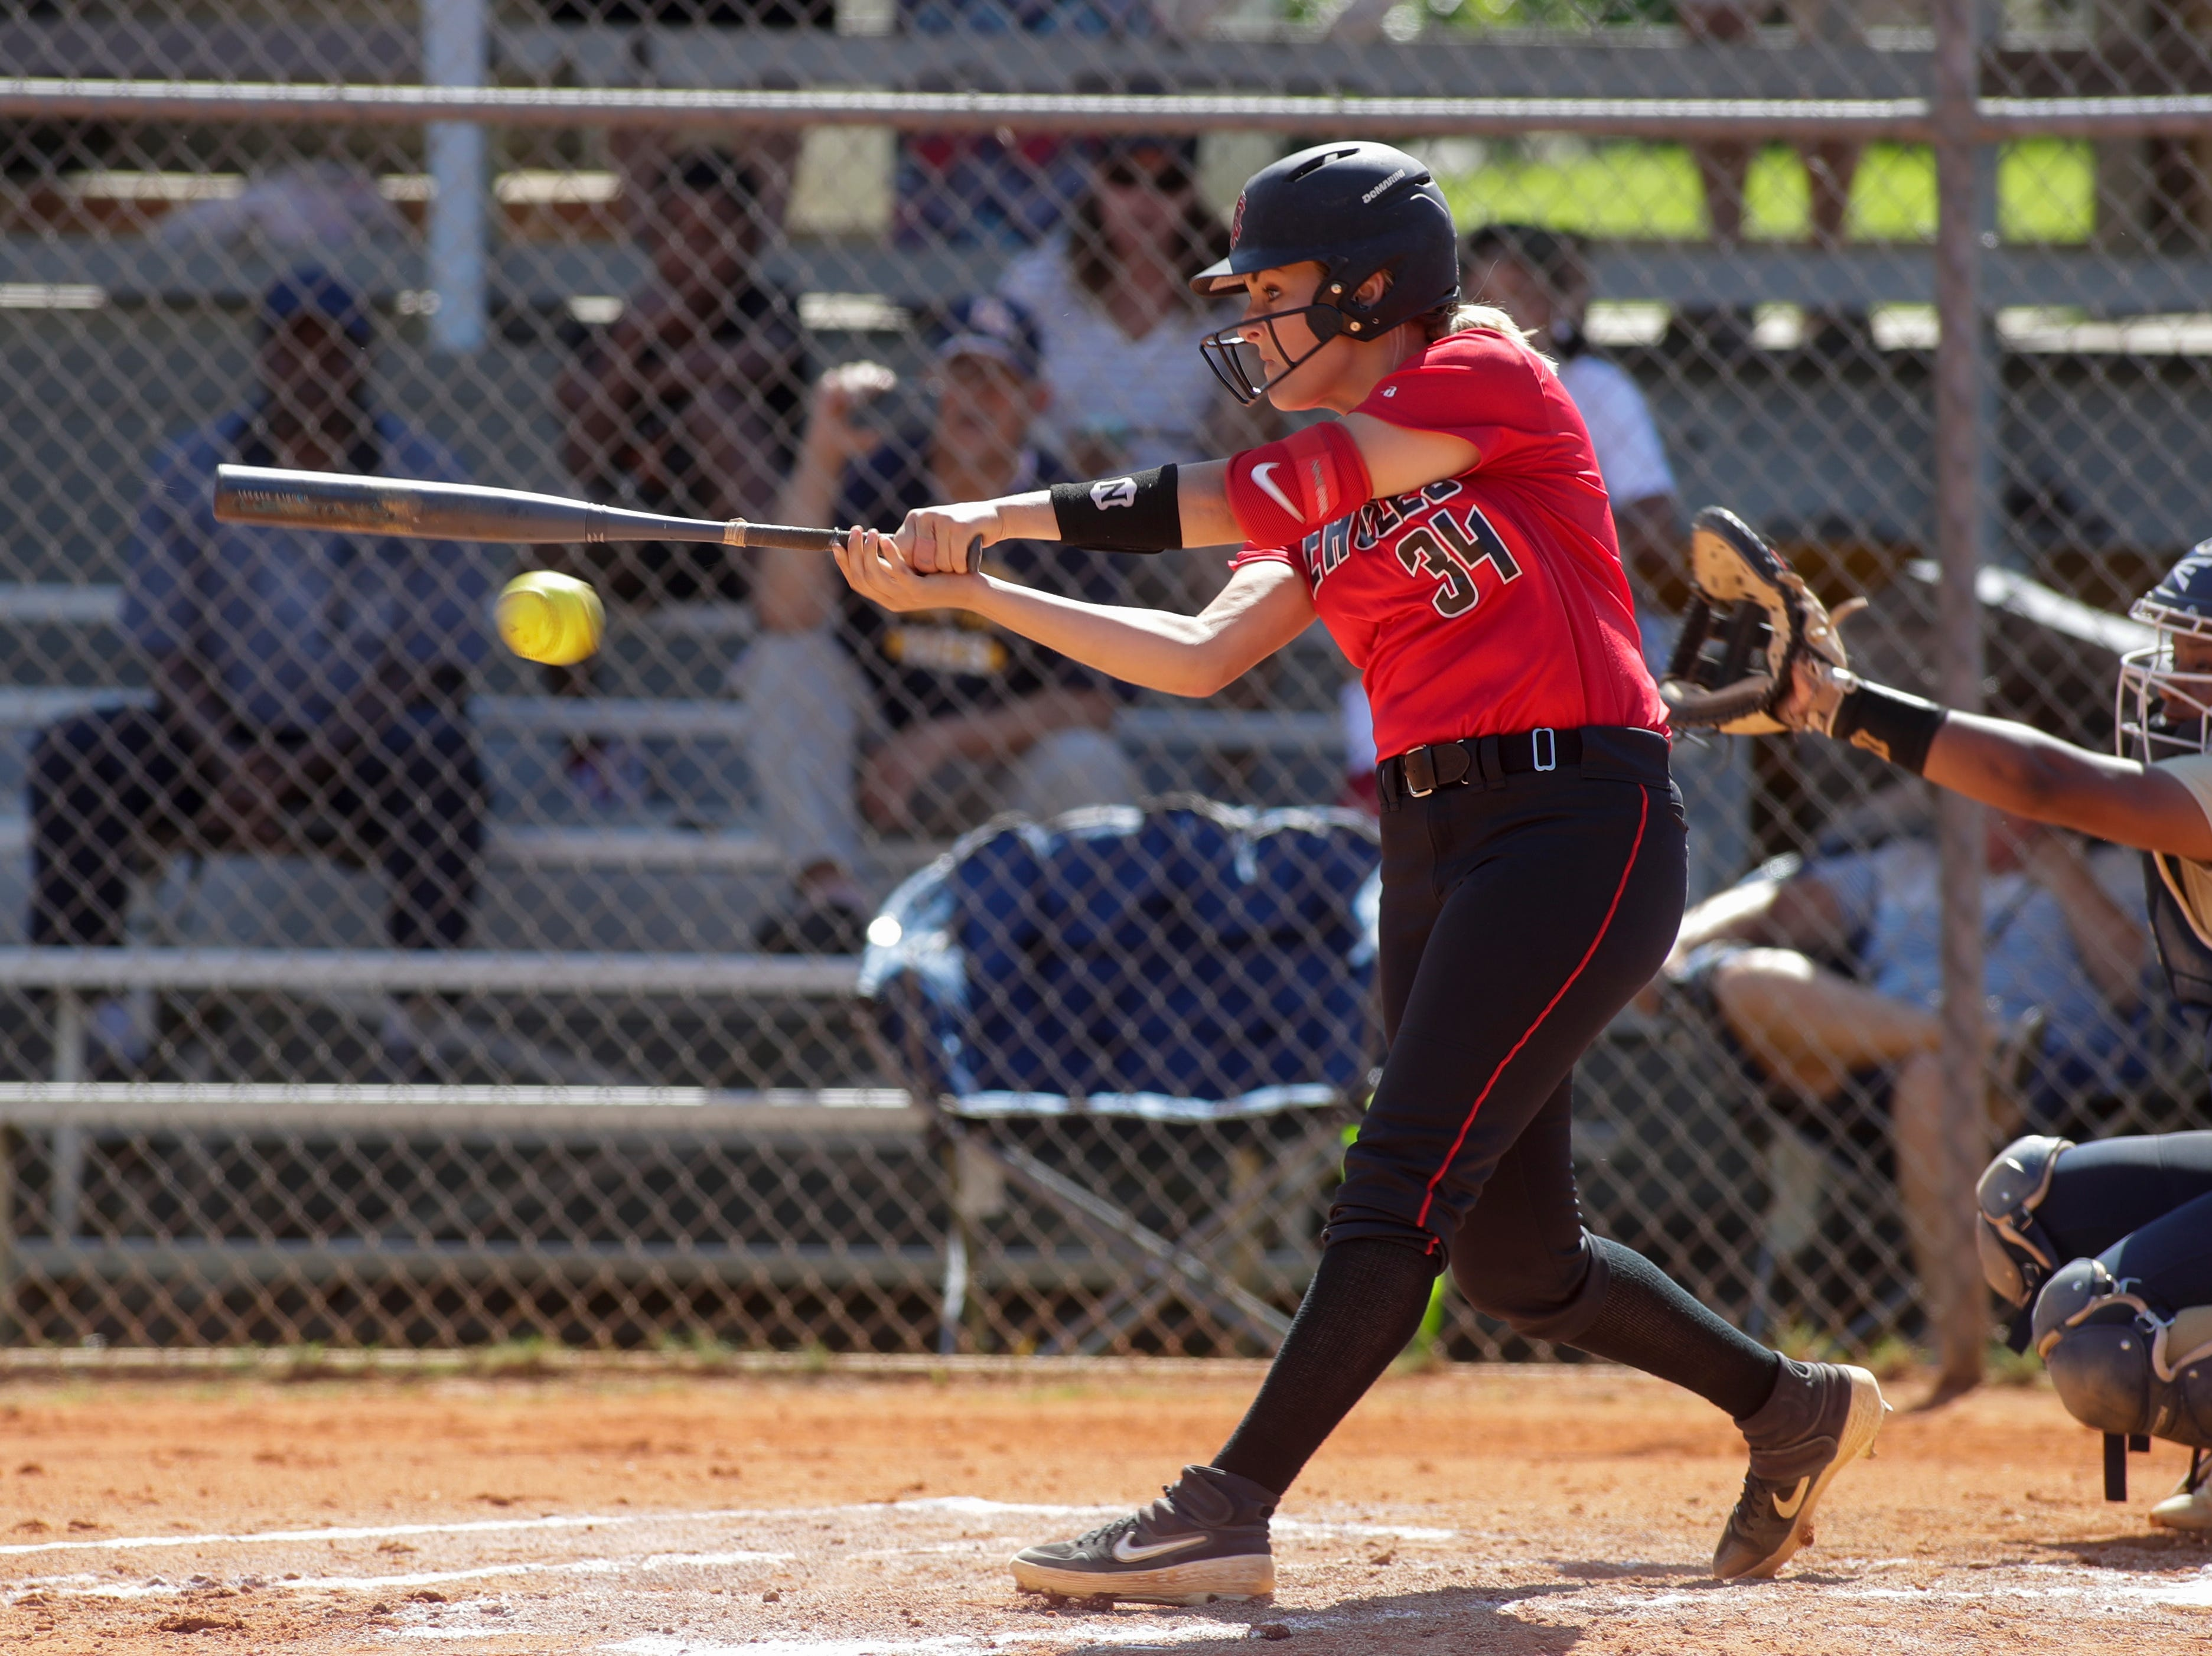 North Florida Christian's Ramsey Shiver (34) swings during the 1-3A regional final game between NFC and University Christian at NFC Tuesday, May 14, 2019. UC defeated NFC 16 to 11 to advance to the state tournament.